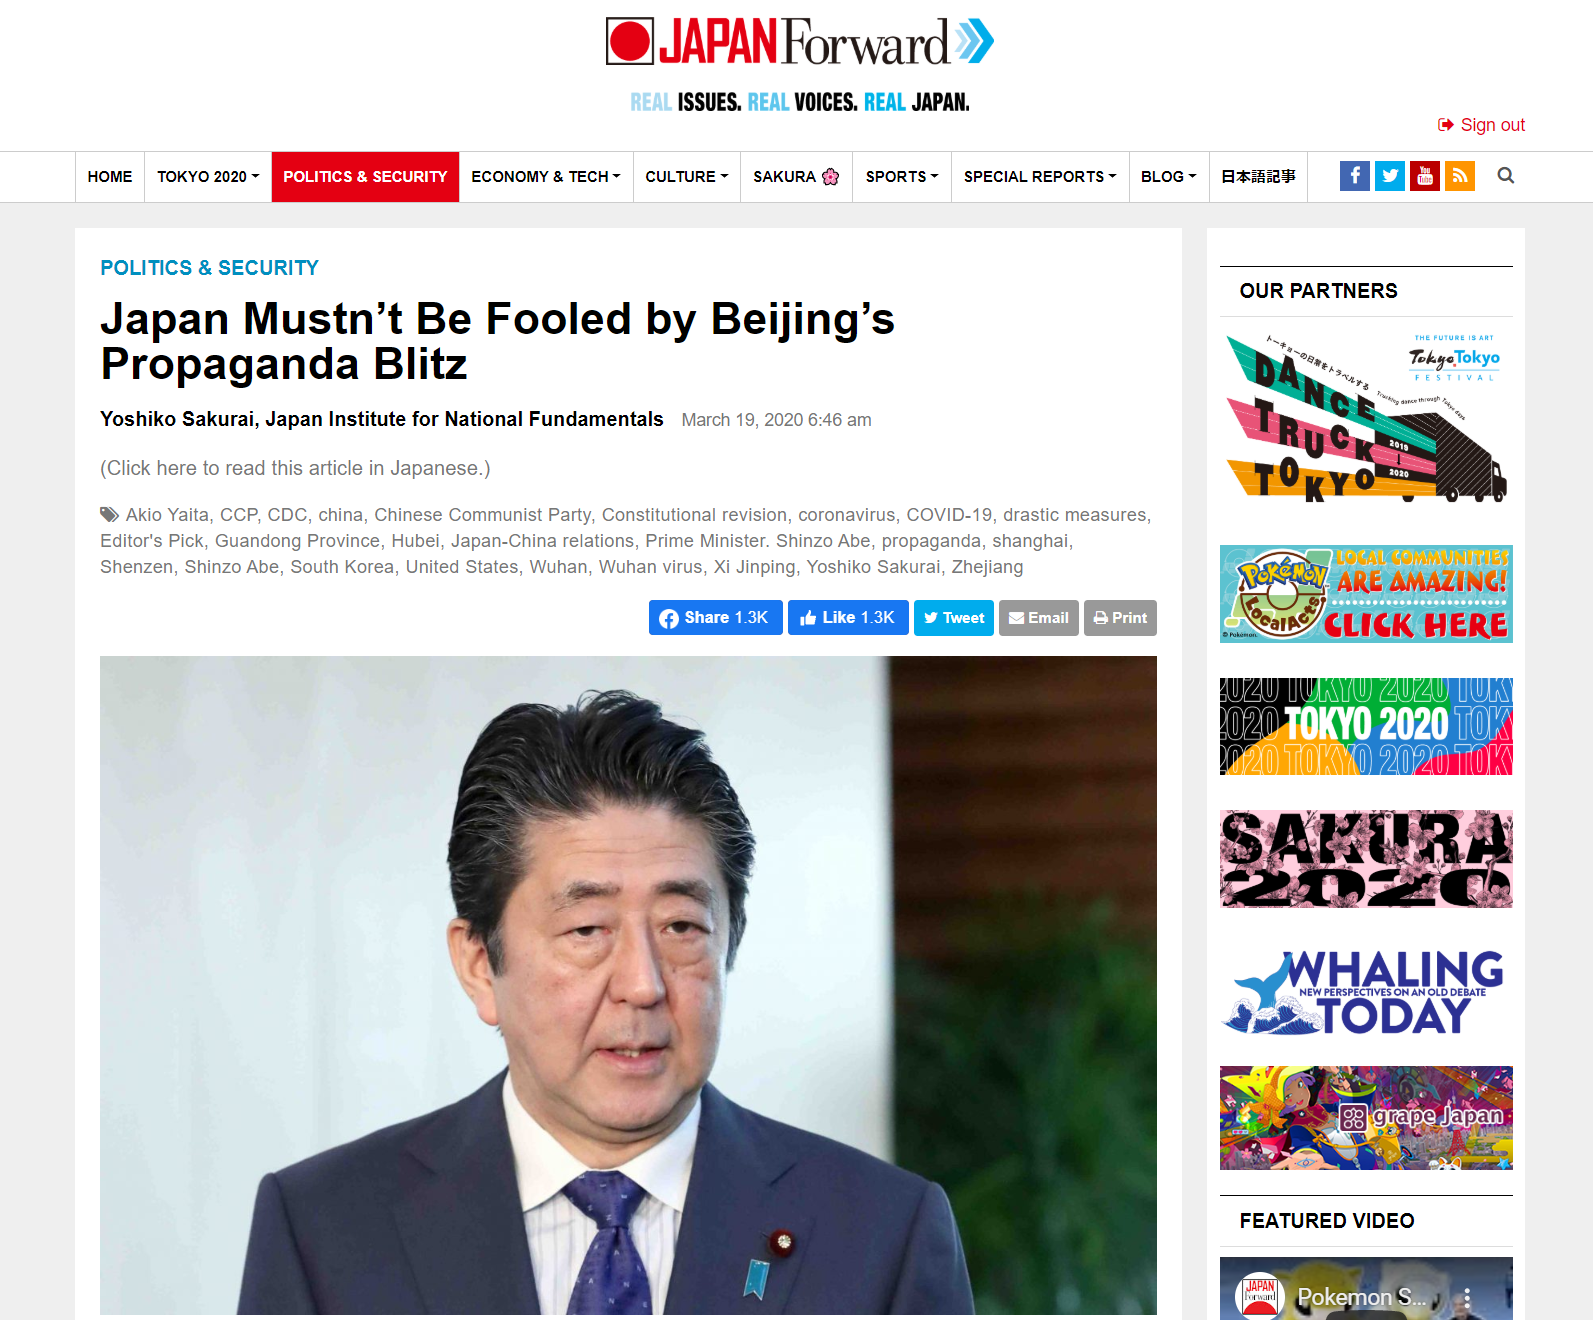 screencapture-japan-forward-japan-mustnt-be-fooled-by-beijings-propaganda-blitz-2020-03-24-22_28_20